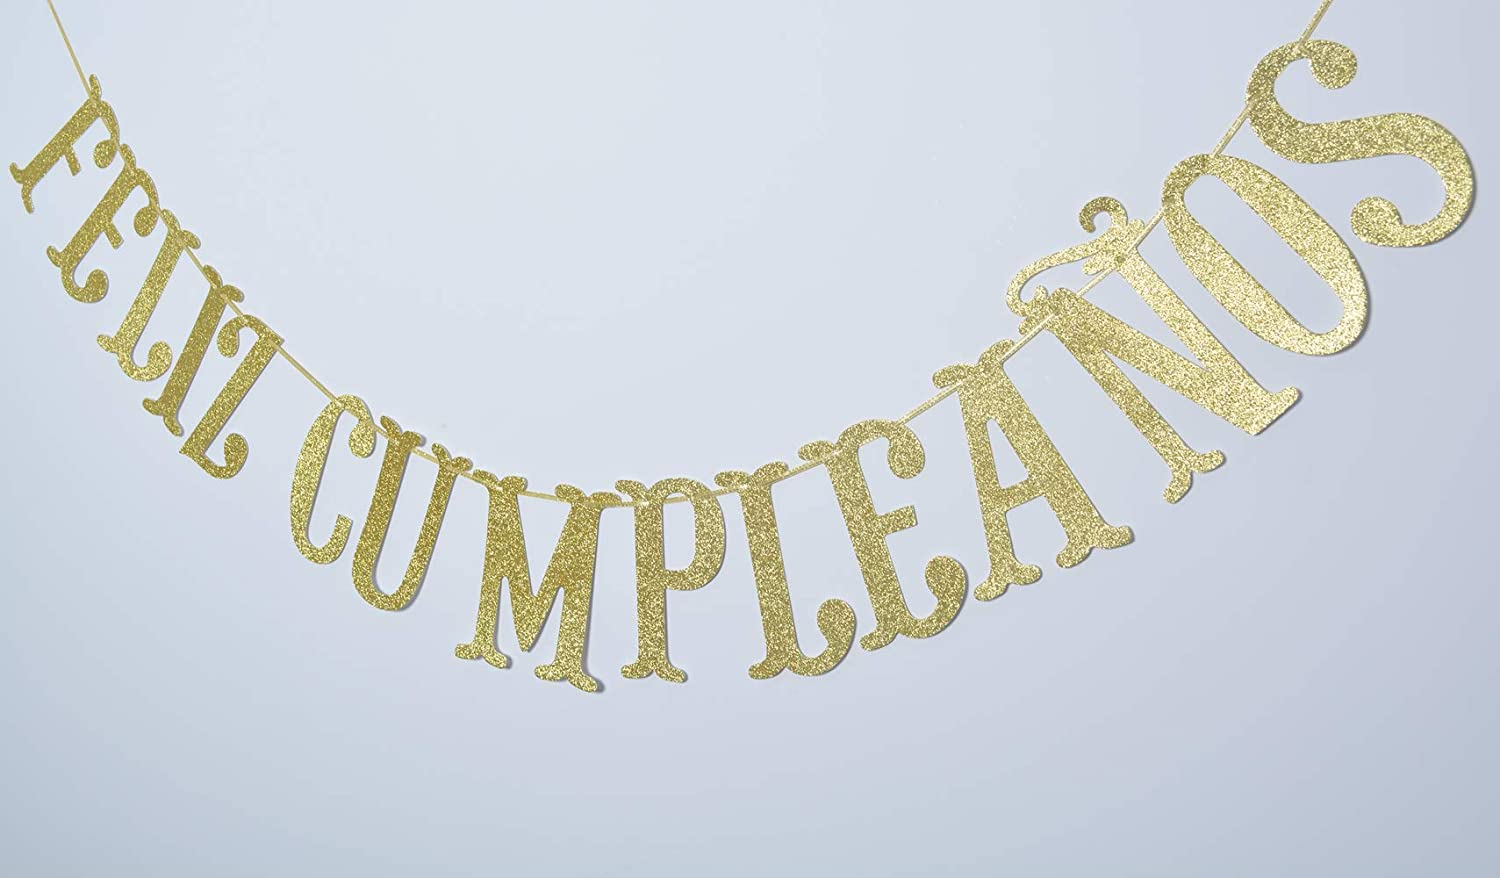 Gold Fiesta Theme Party Decorations Feliz Cumplea/ños Gold Glitter Banner-Happy Birthday